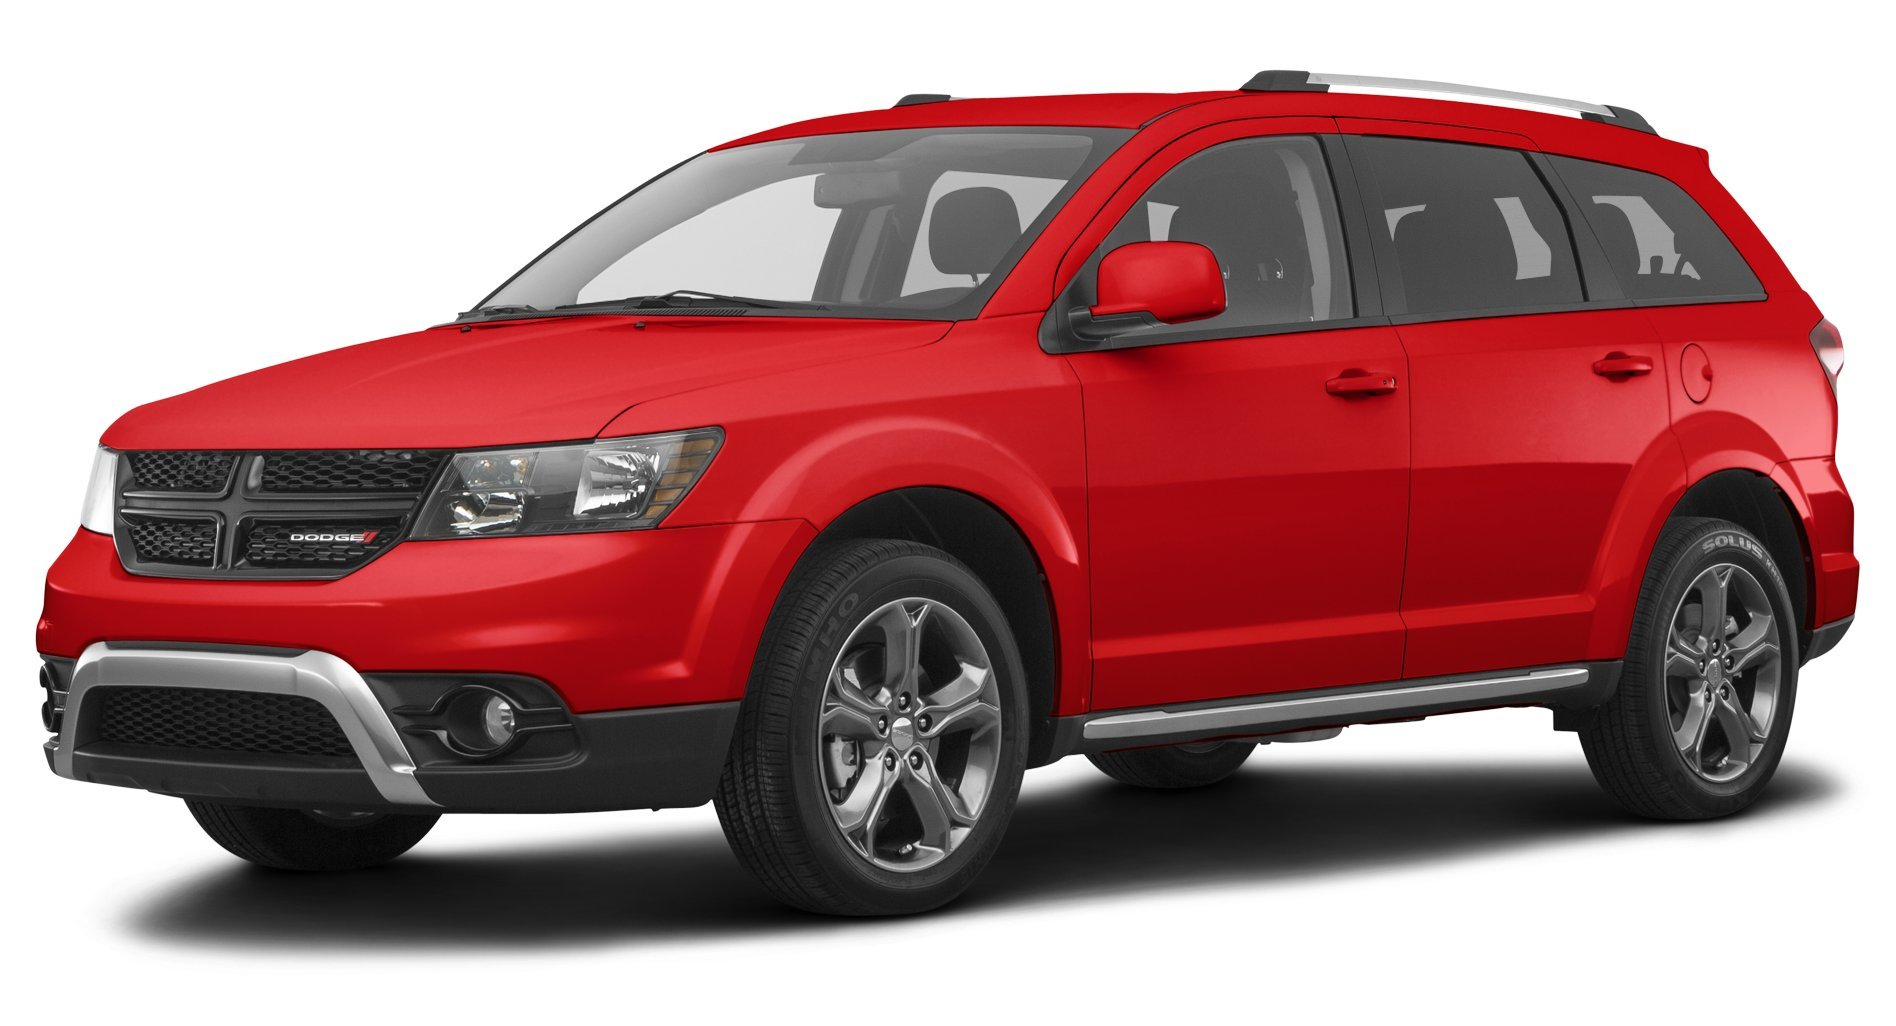 2017 Mitsubishi Outlander Reviews Images And Specs 2001 Toyota Rav4 Relay Dodge Journey Sxt Front Wheel Drive